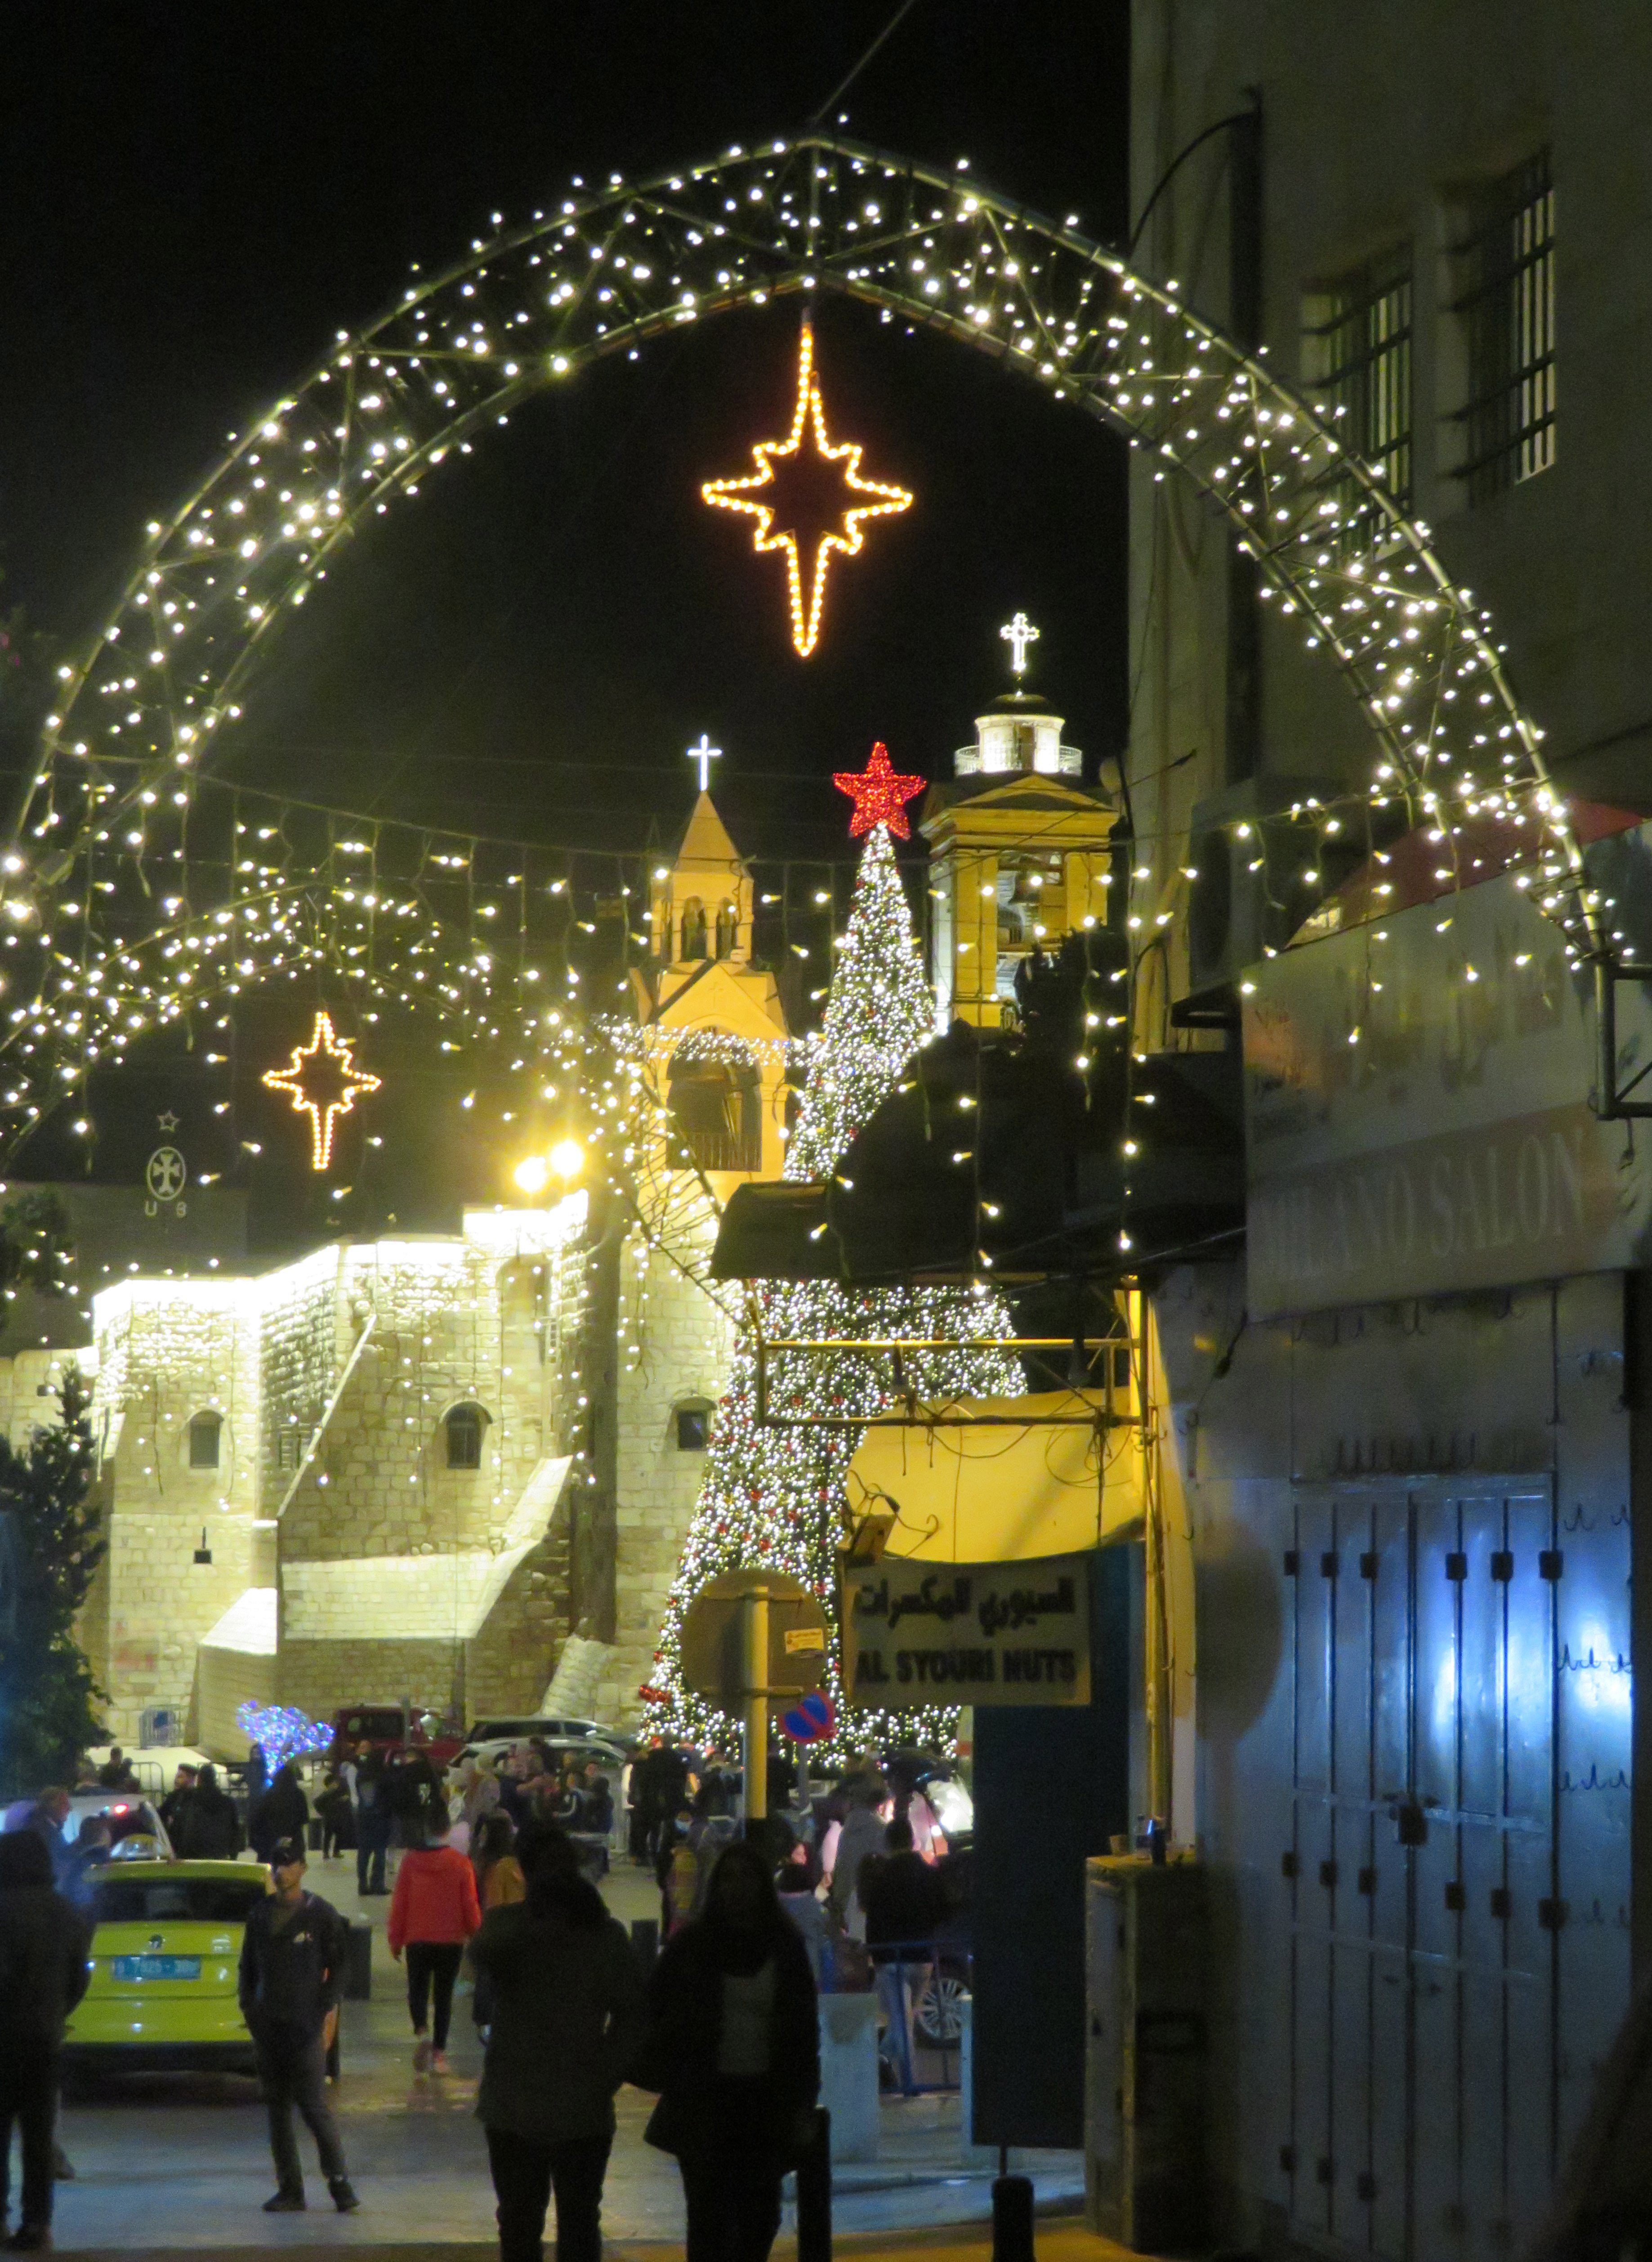 In spite of COVID-19, Bethlehem is determined to let its light shine in the darkness.